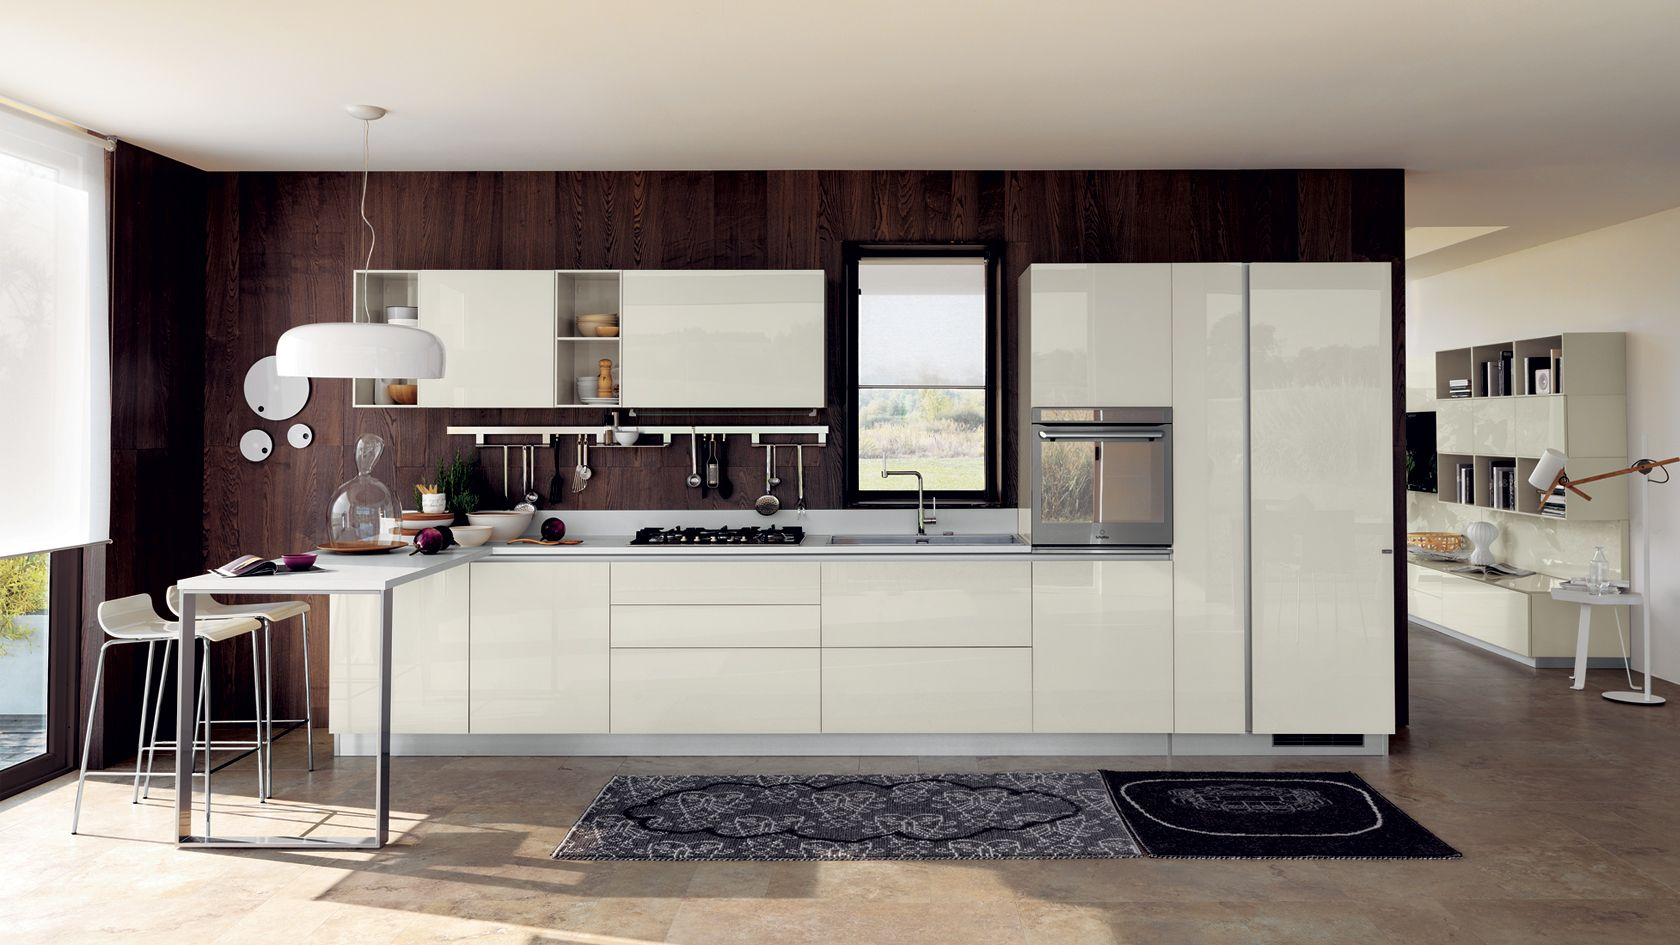 kitchen liberamente scavolini | kitchen inspiration | pinterest, Hause ideen